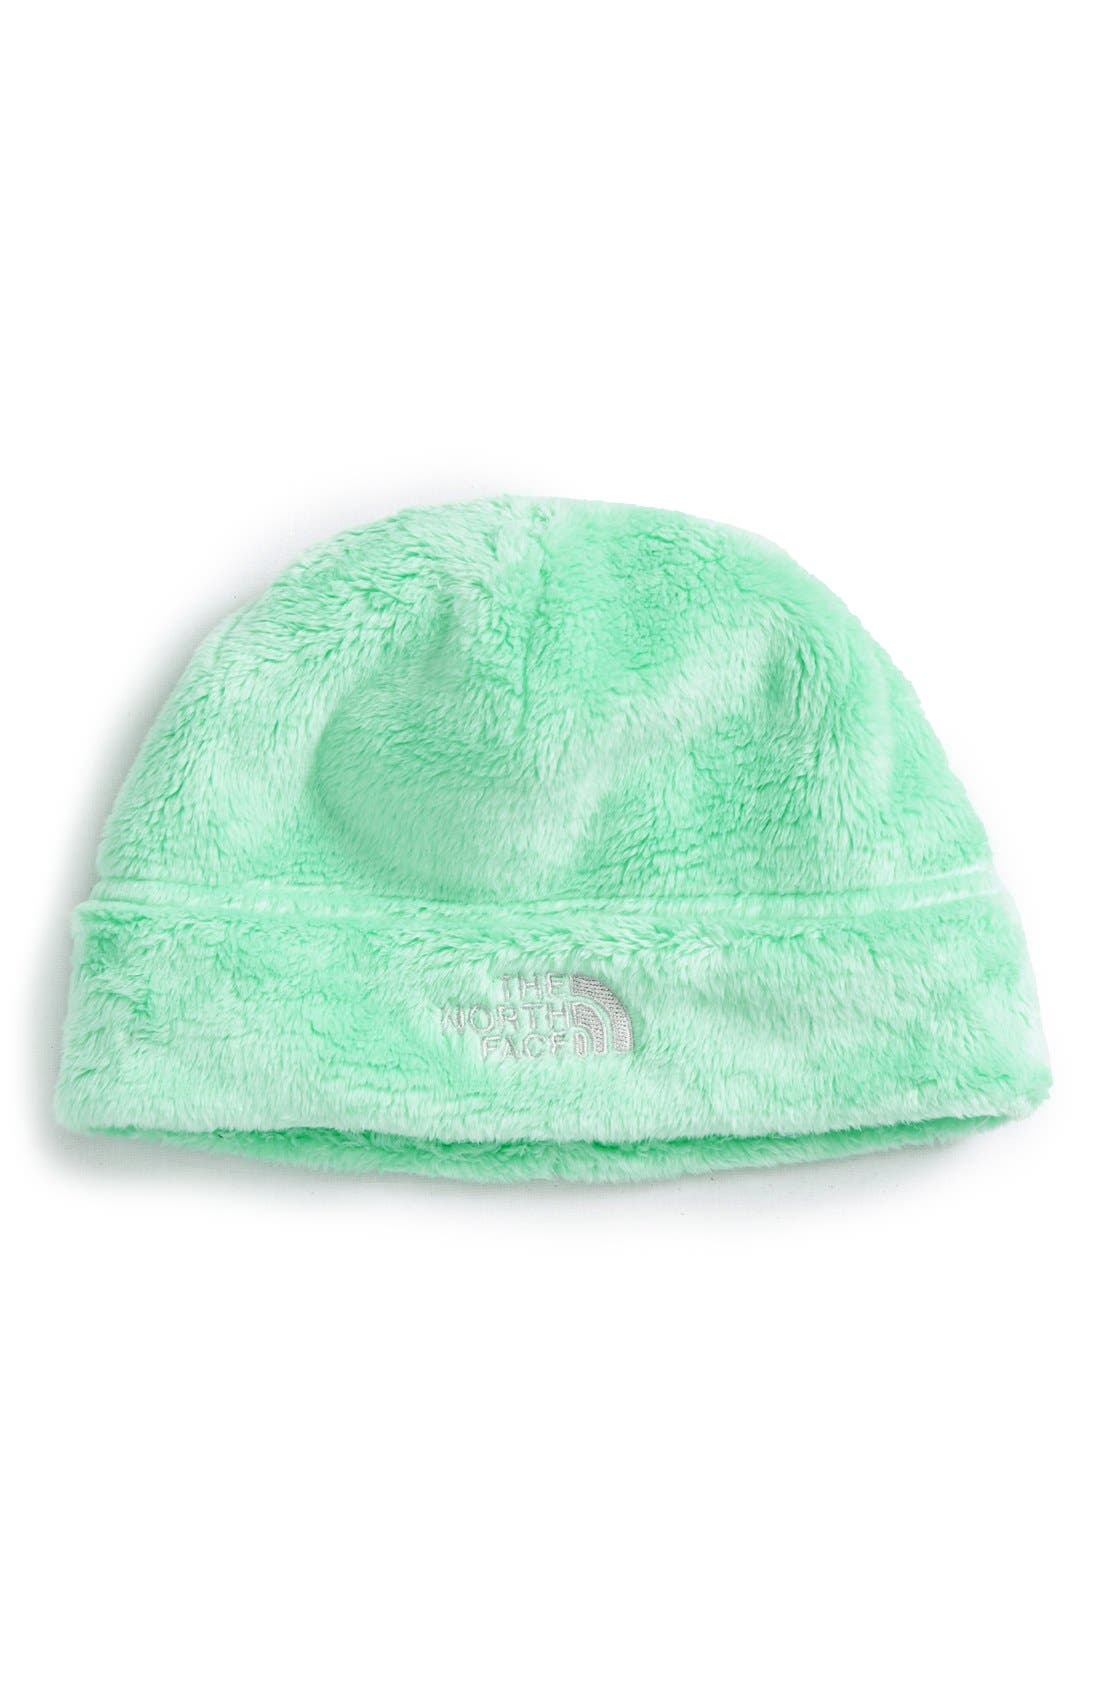 Alternate Image 1 Selected - The North Face 'Oso Cute' Beanie (Baby)